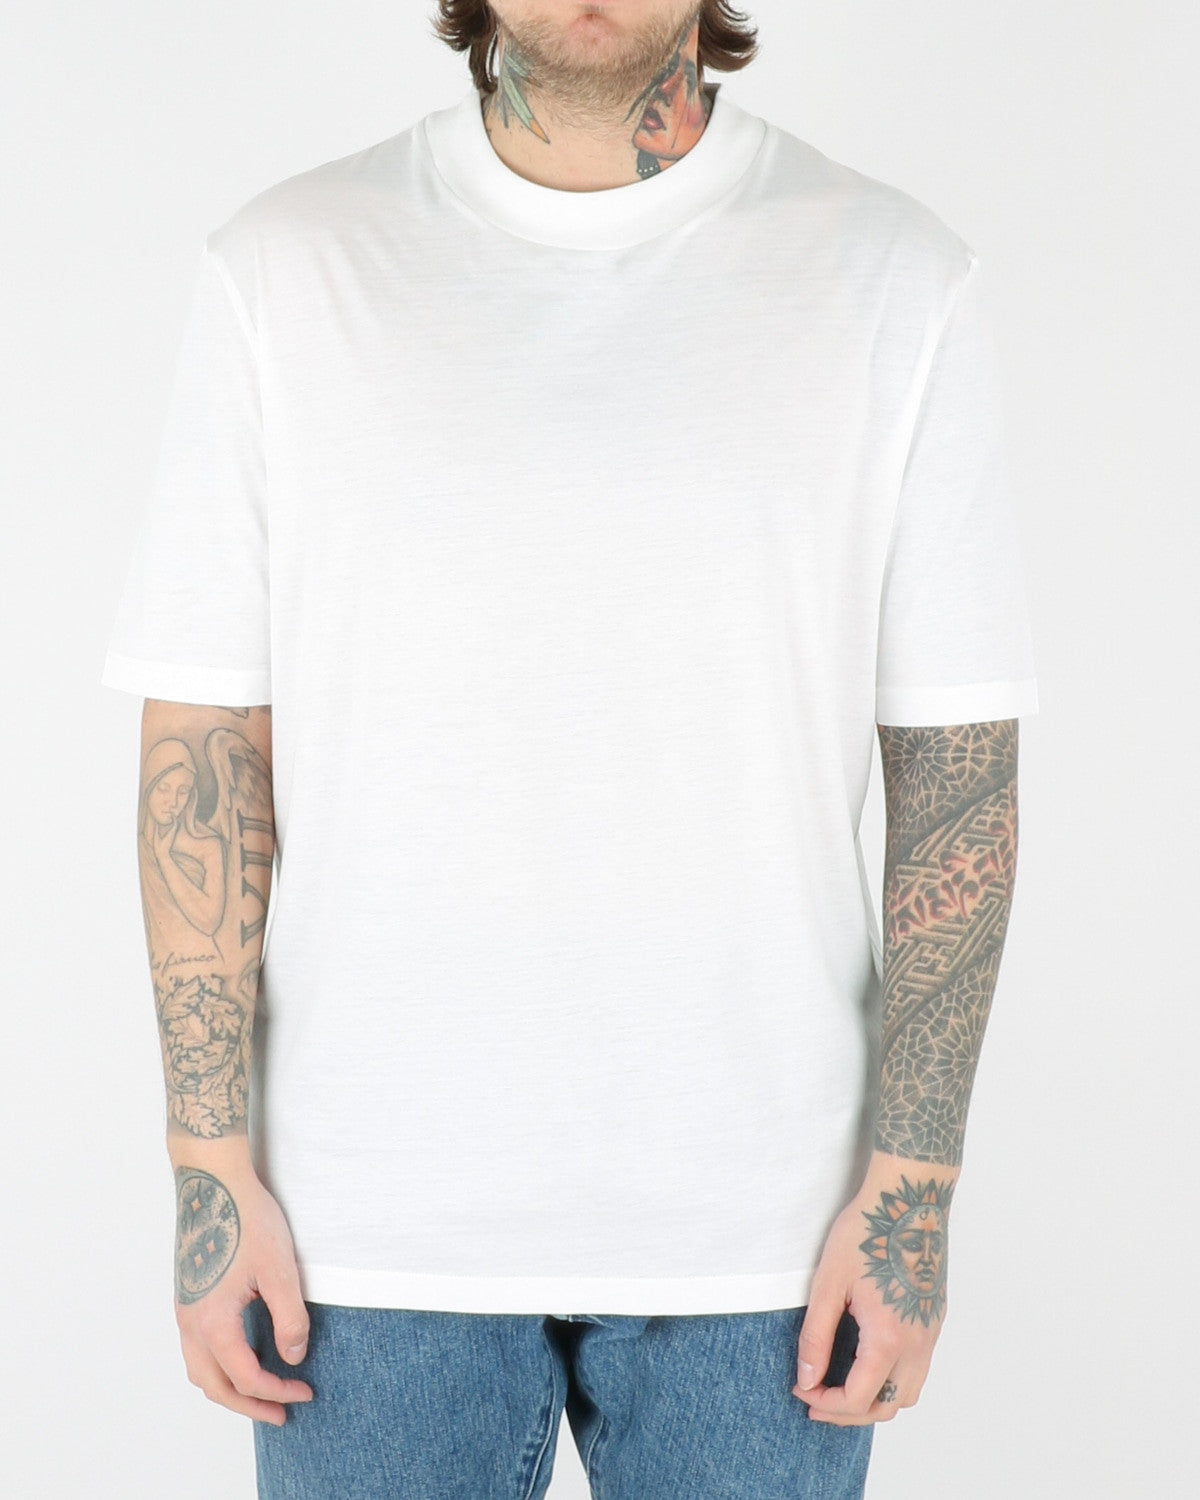 whyred_adham t-shirt_white_view_1_2